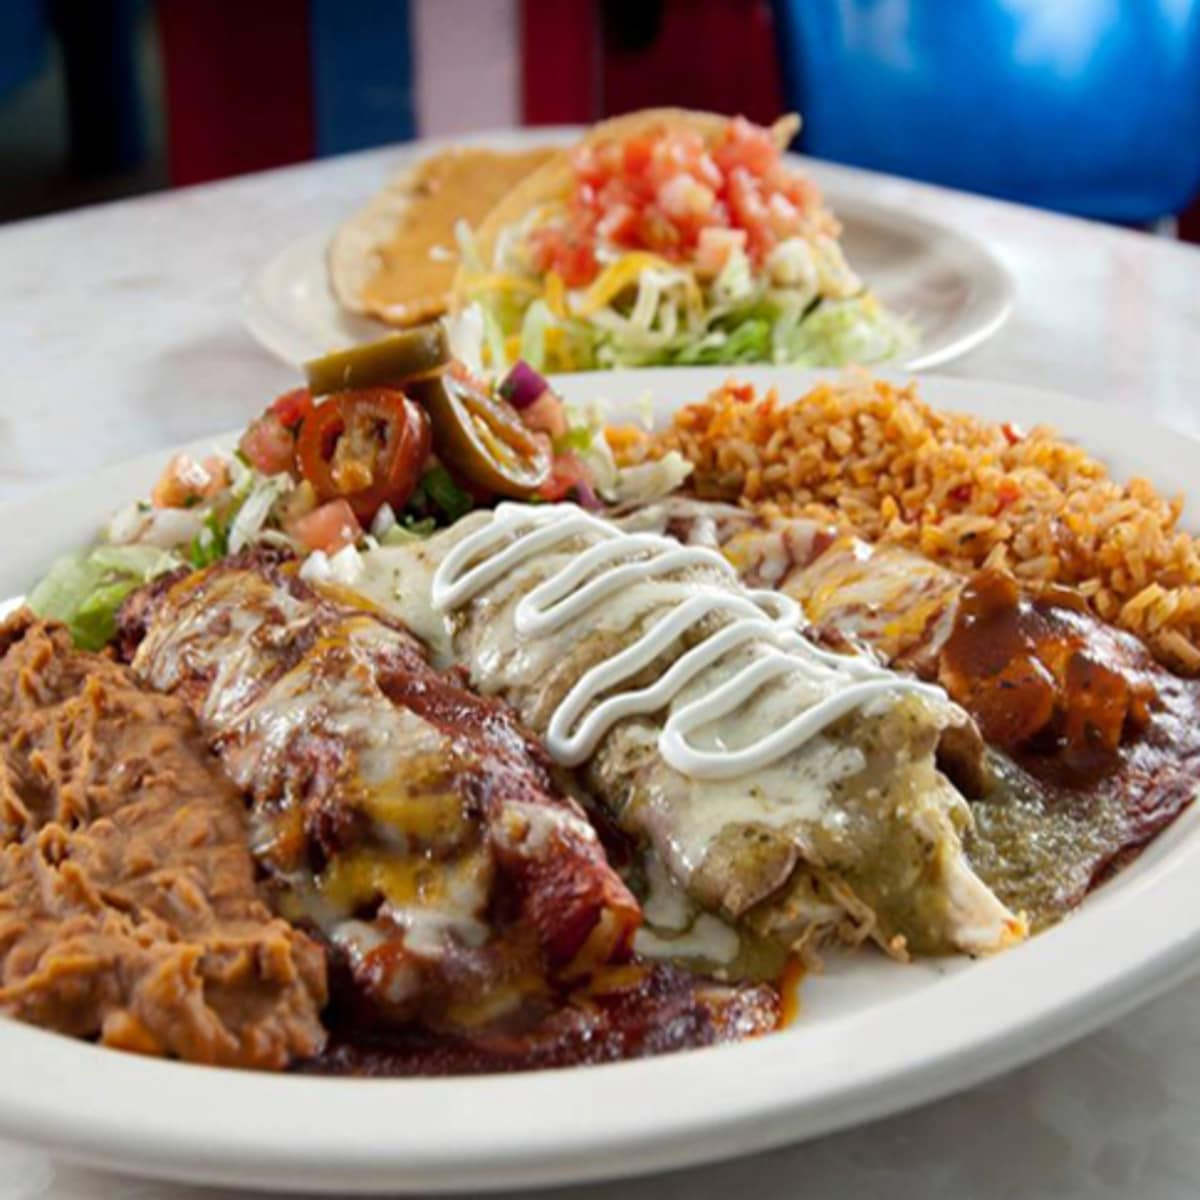 Austin_photo: places_food_chuy's_research_food